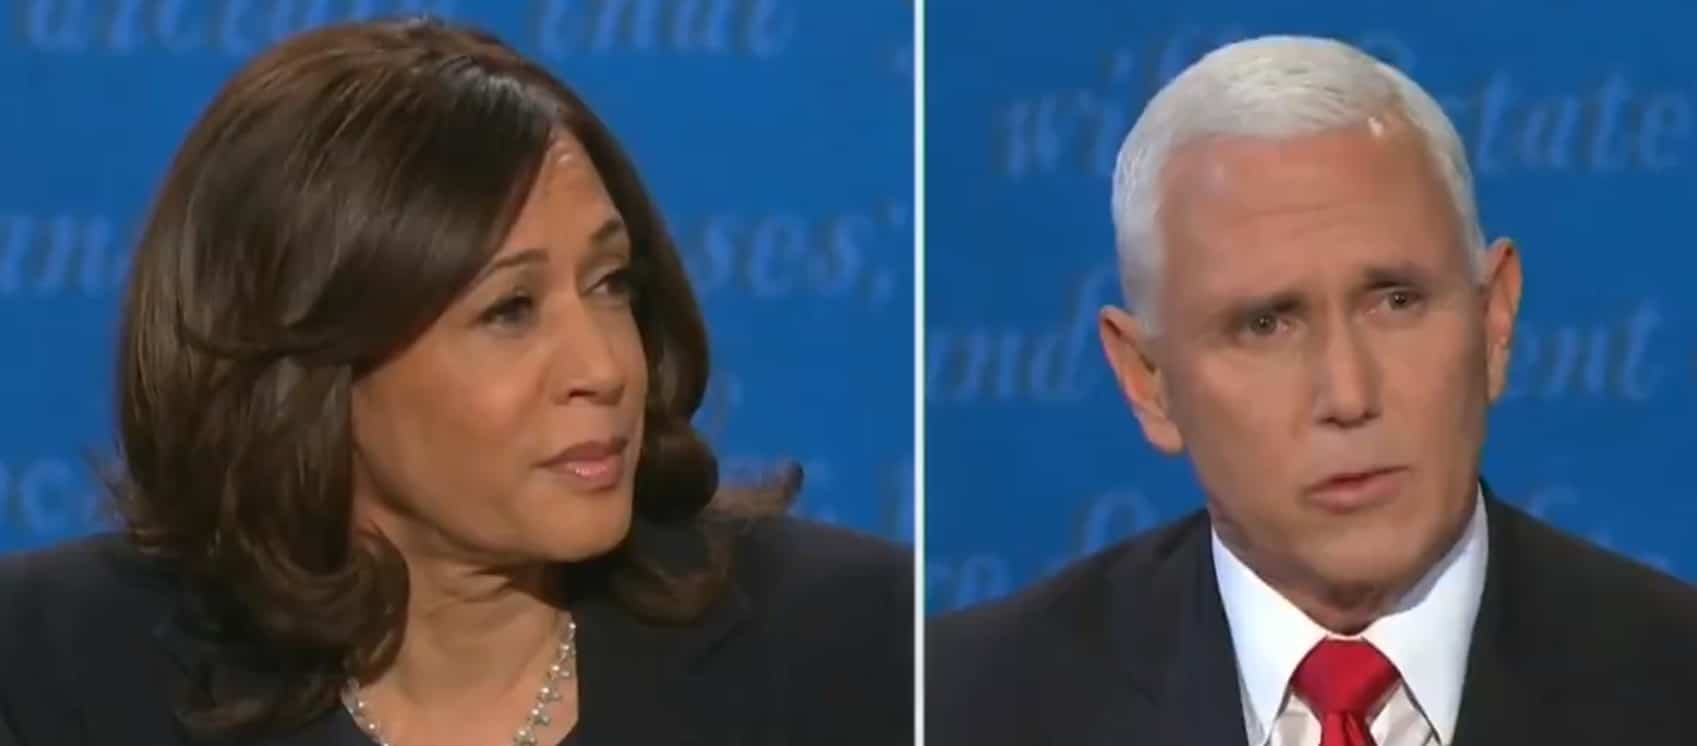 The Top Five Moments From the Vice-Presidential Debate Last Night